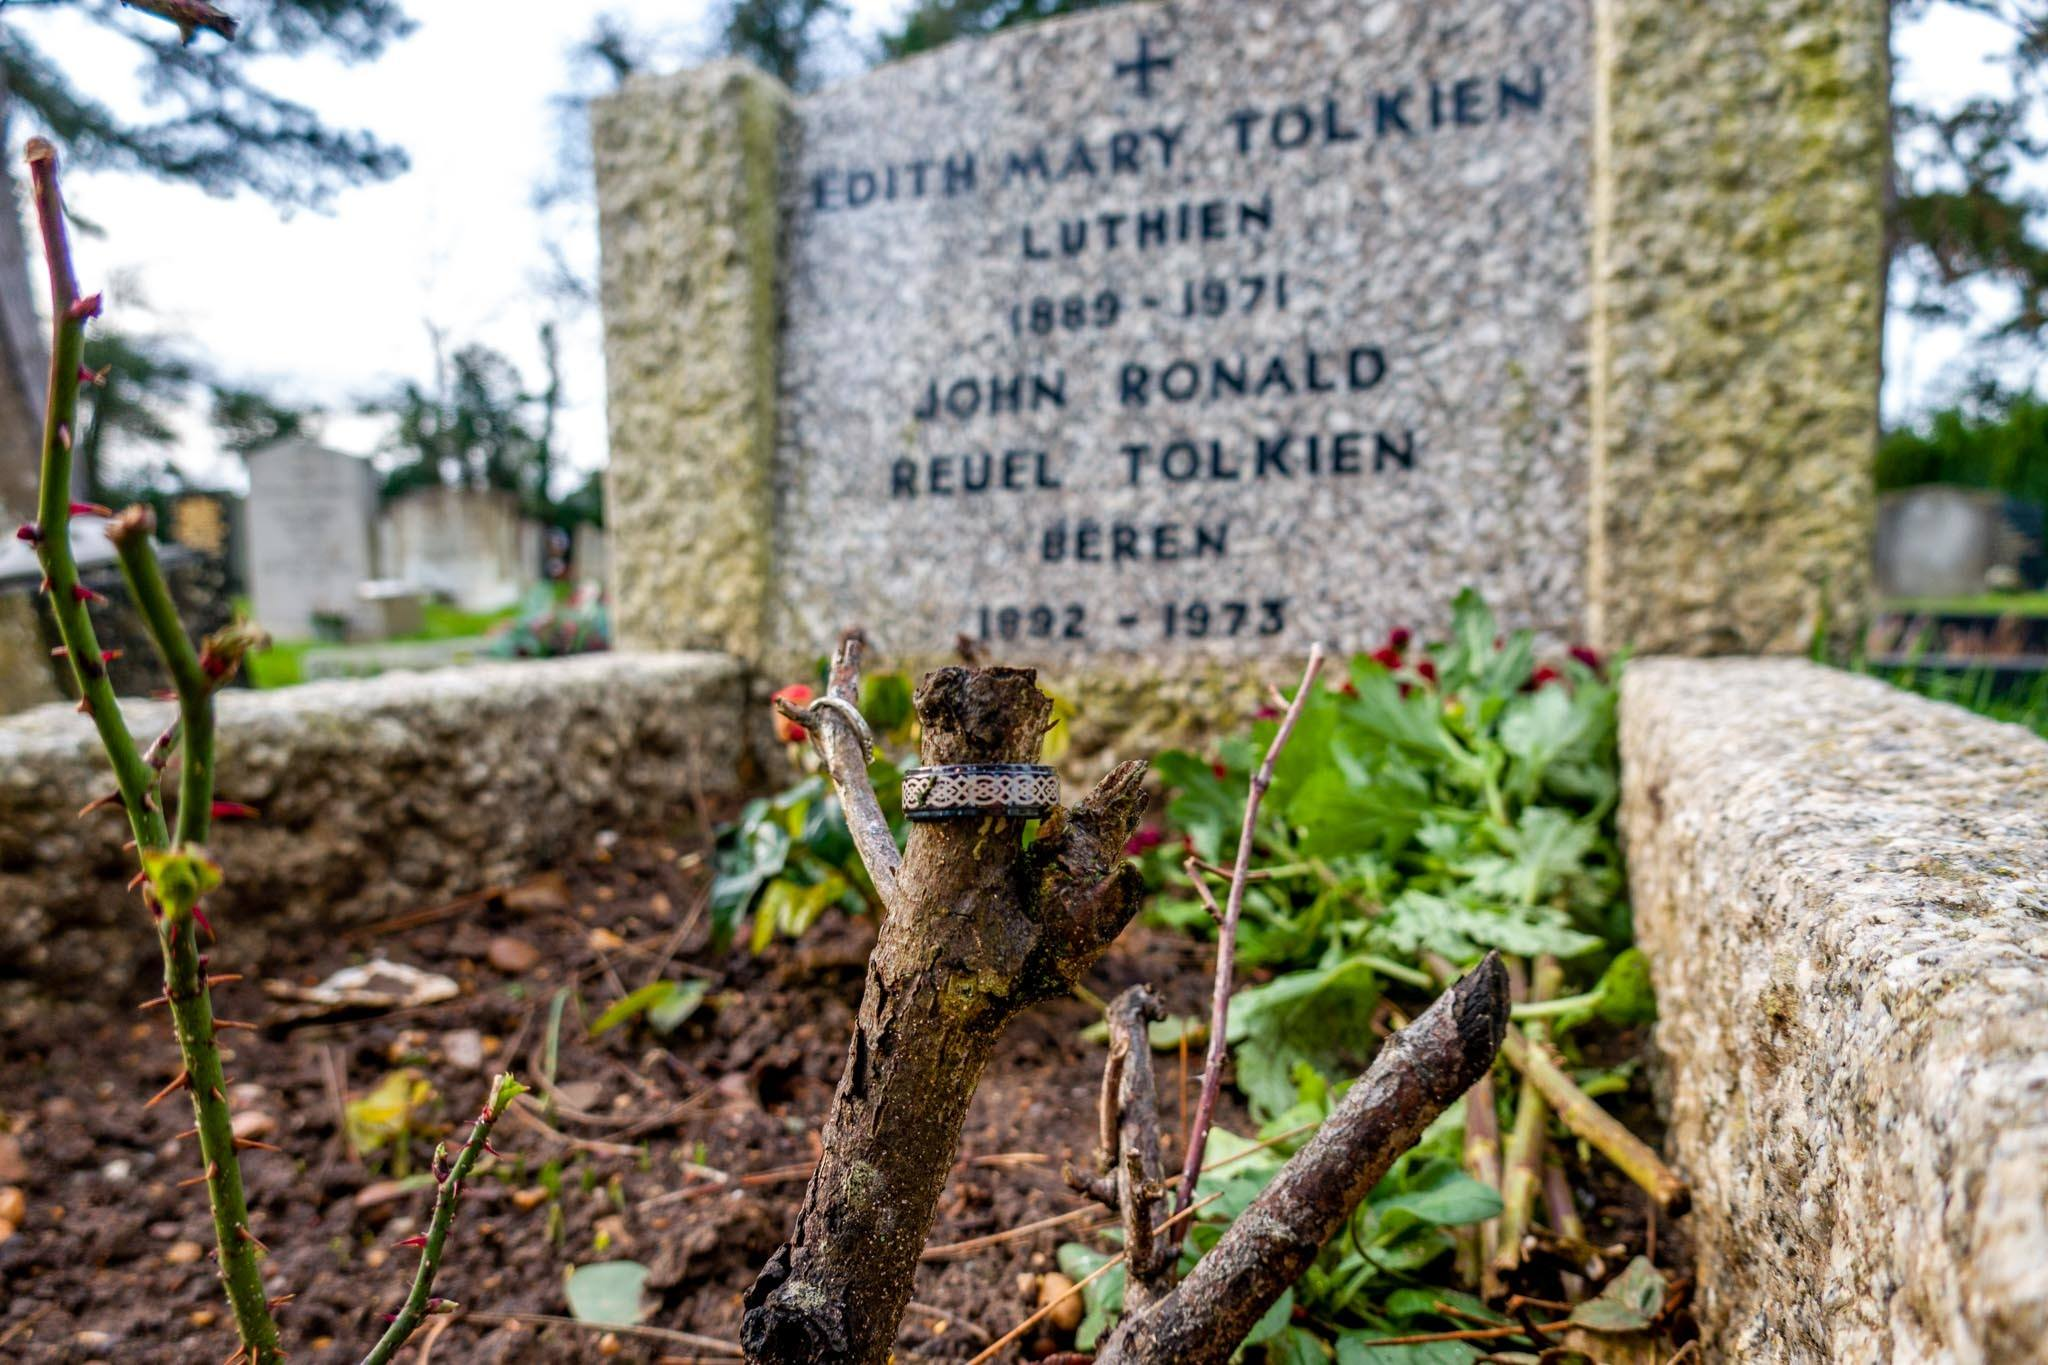 Rings around the stalk of a rosebush at the grave of JRR Tolkien and his wife